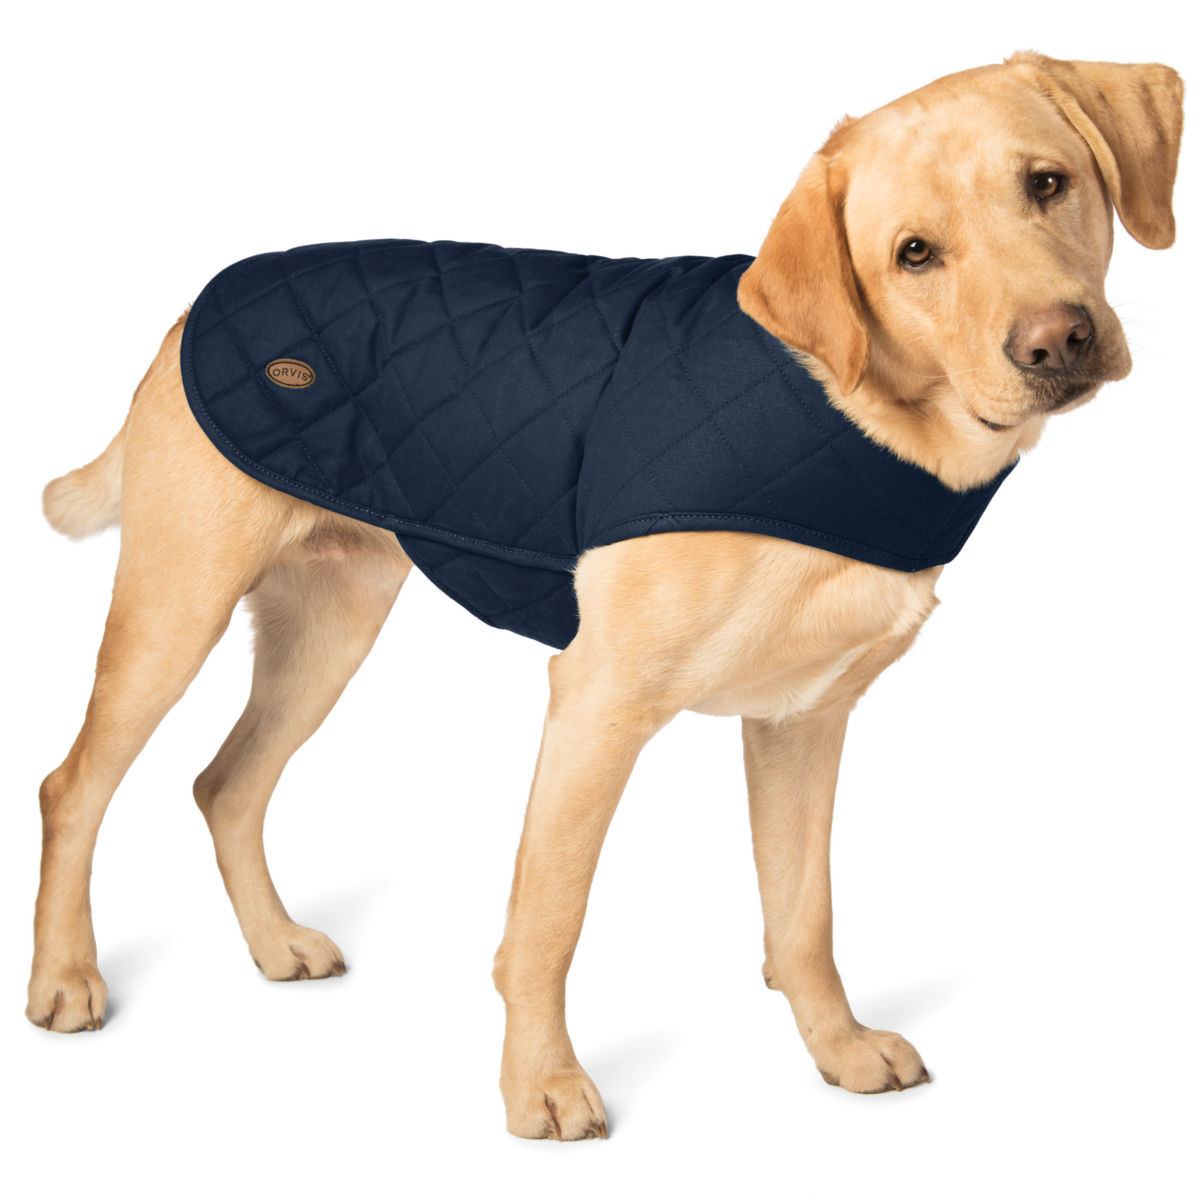 Quilted Waxed Cotton Dog Jacket - NAVY BLUEimage number 0